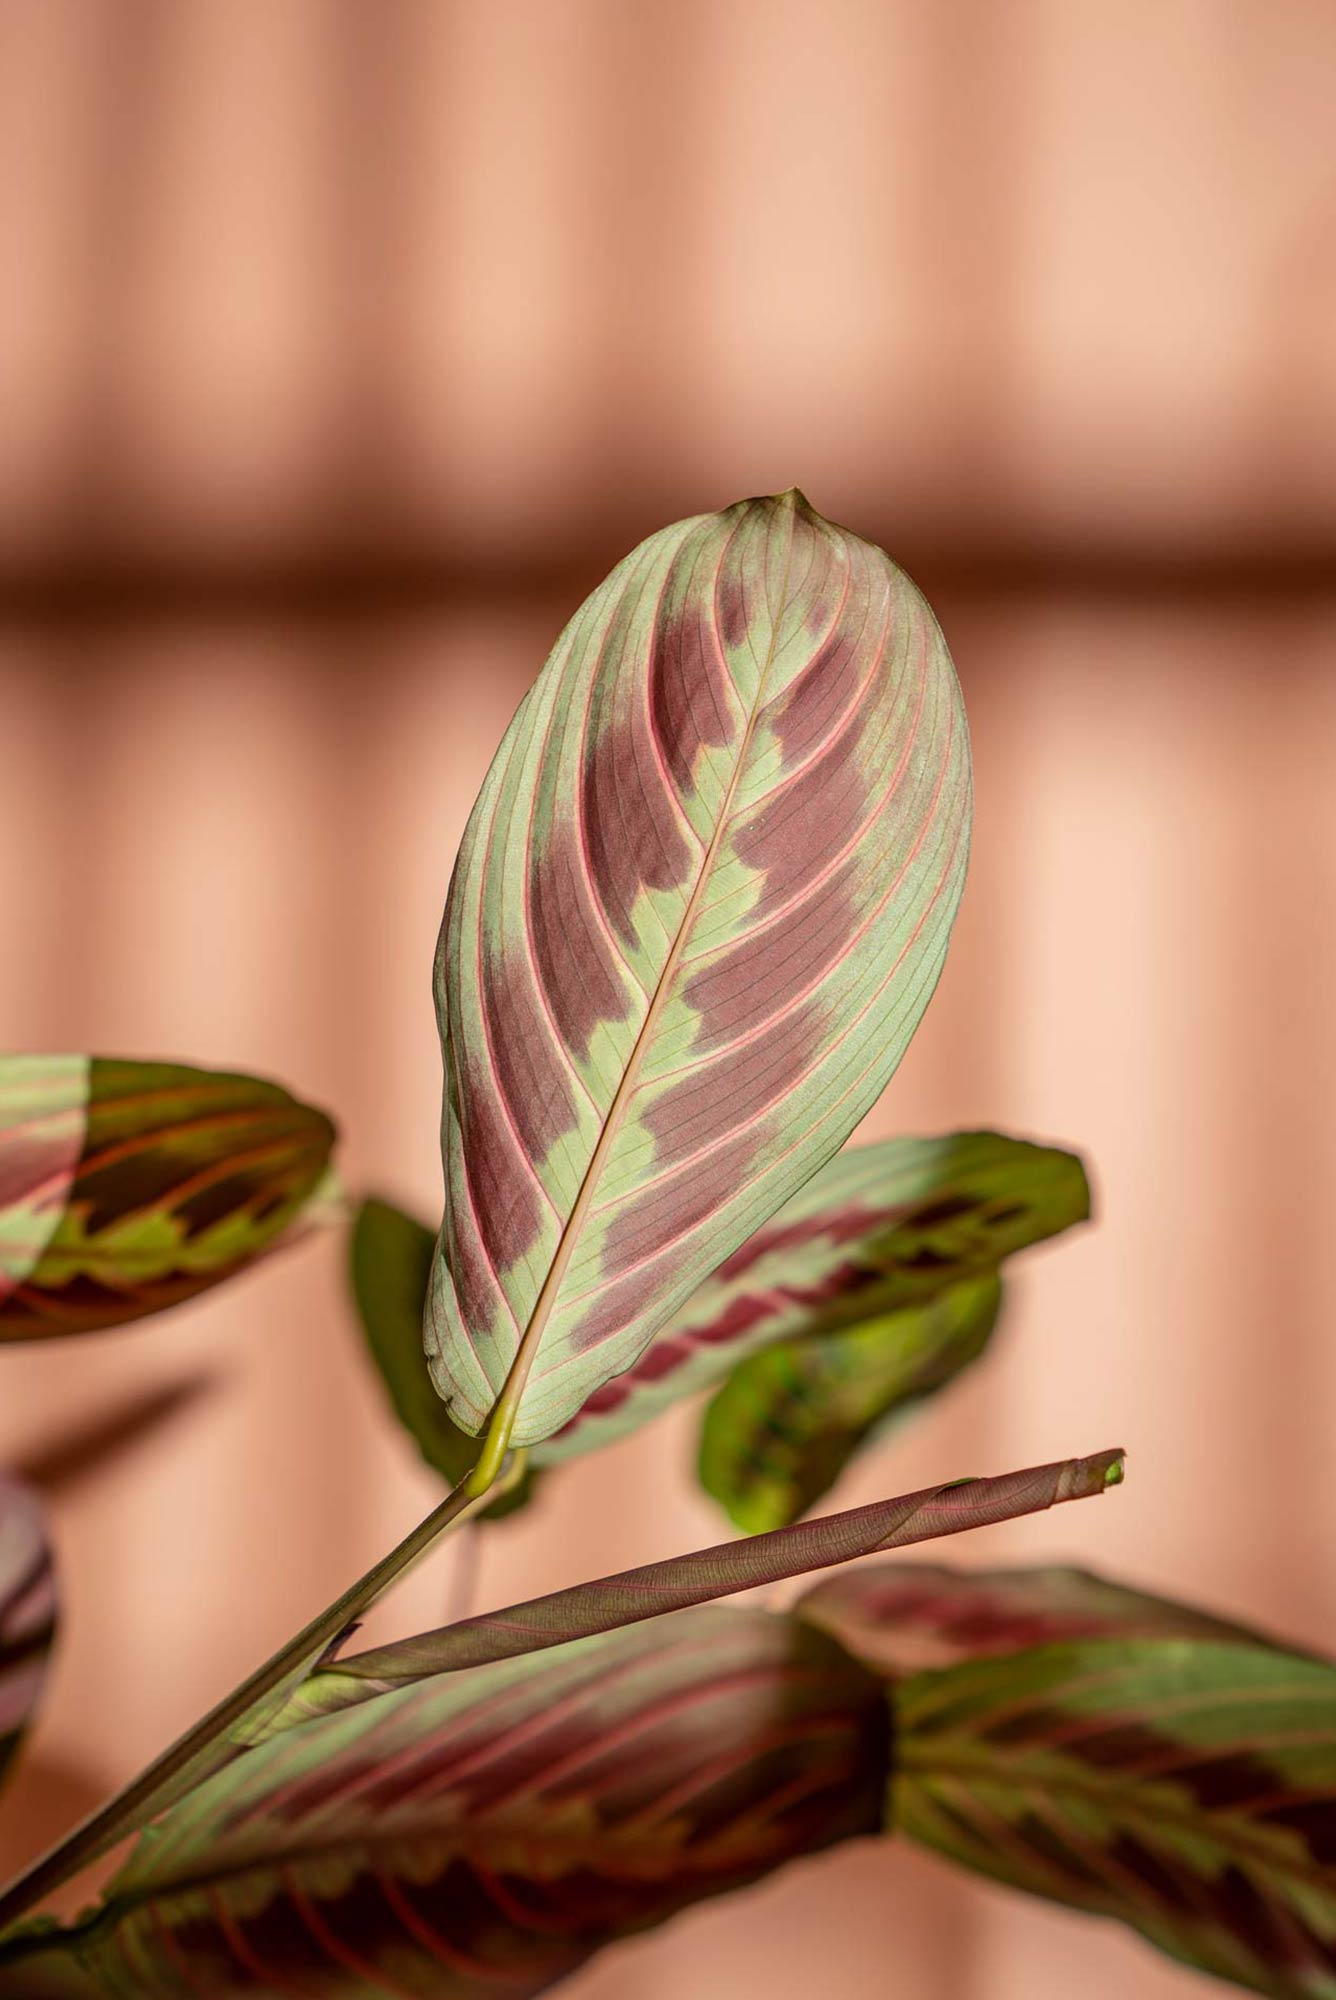 High quality plant photography of Maranta plant